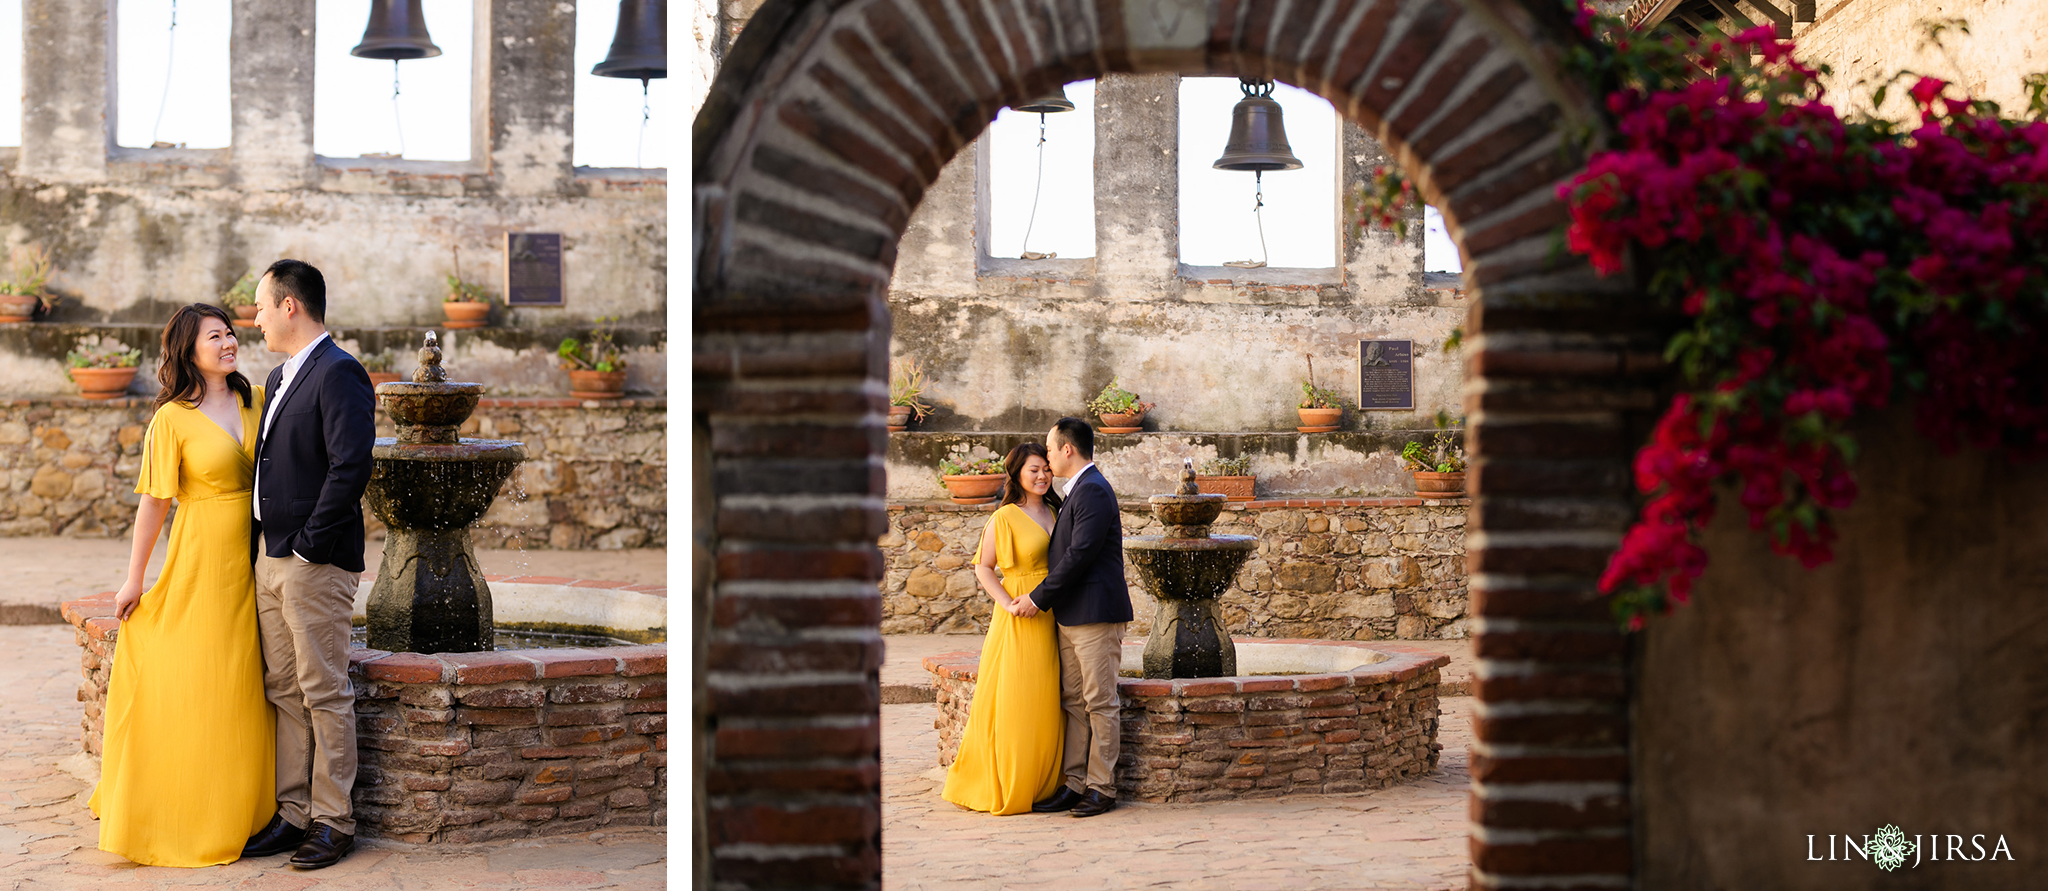 08 Mission San Juan Capistrano Engagement Photography